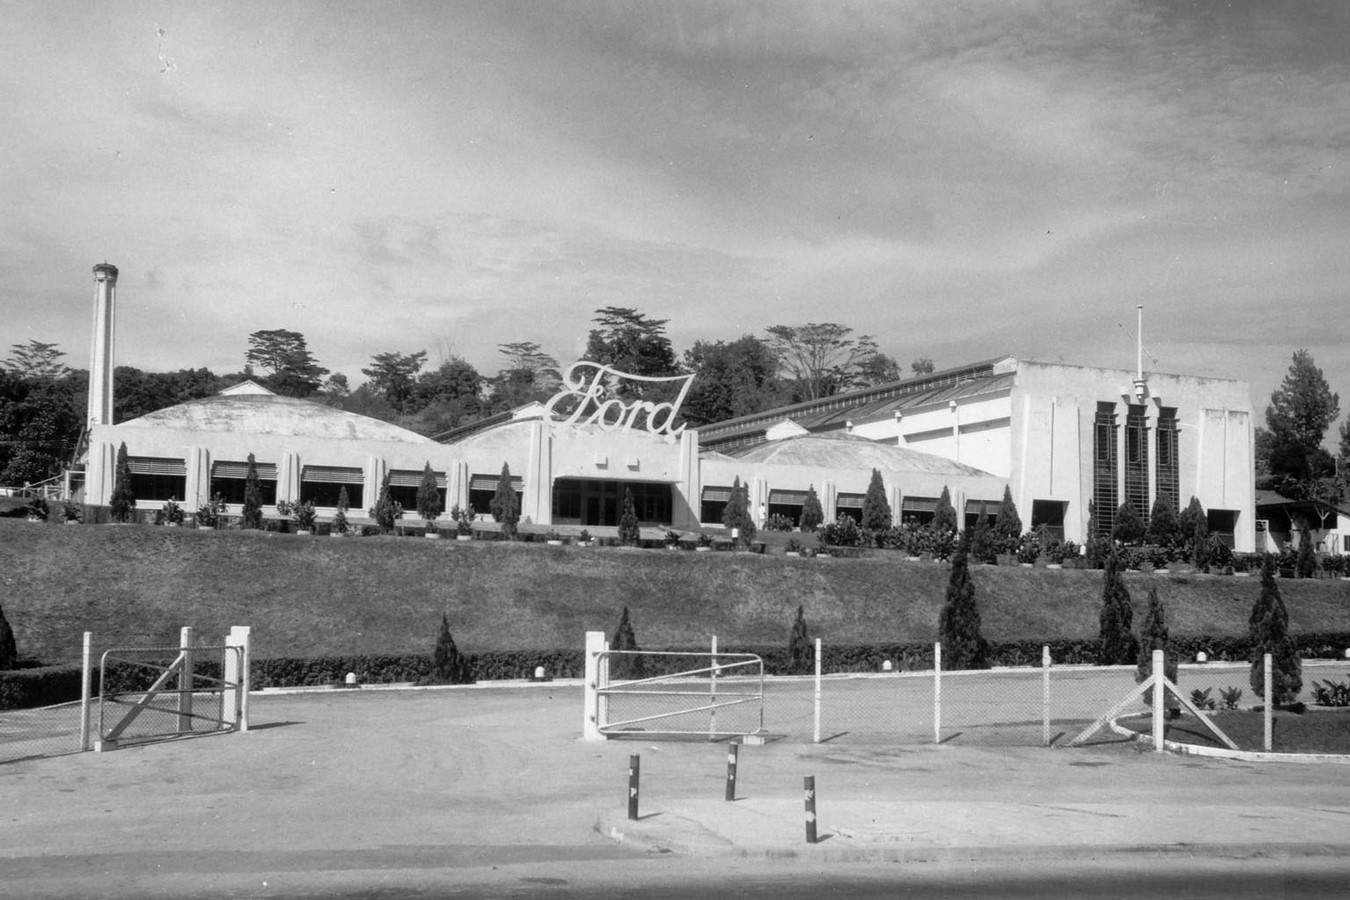 Architecture in Singapore - Old Ford Motor Factory - Sheet2